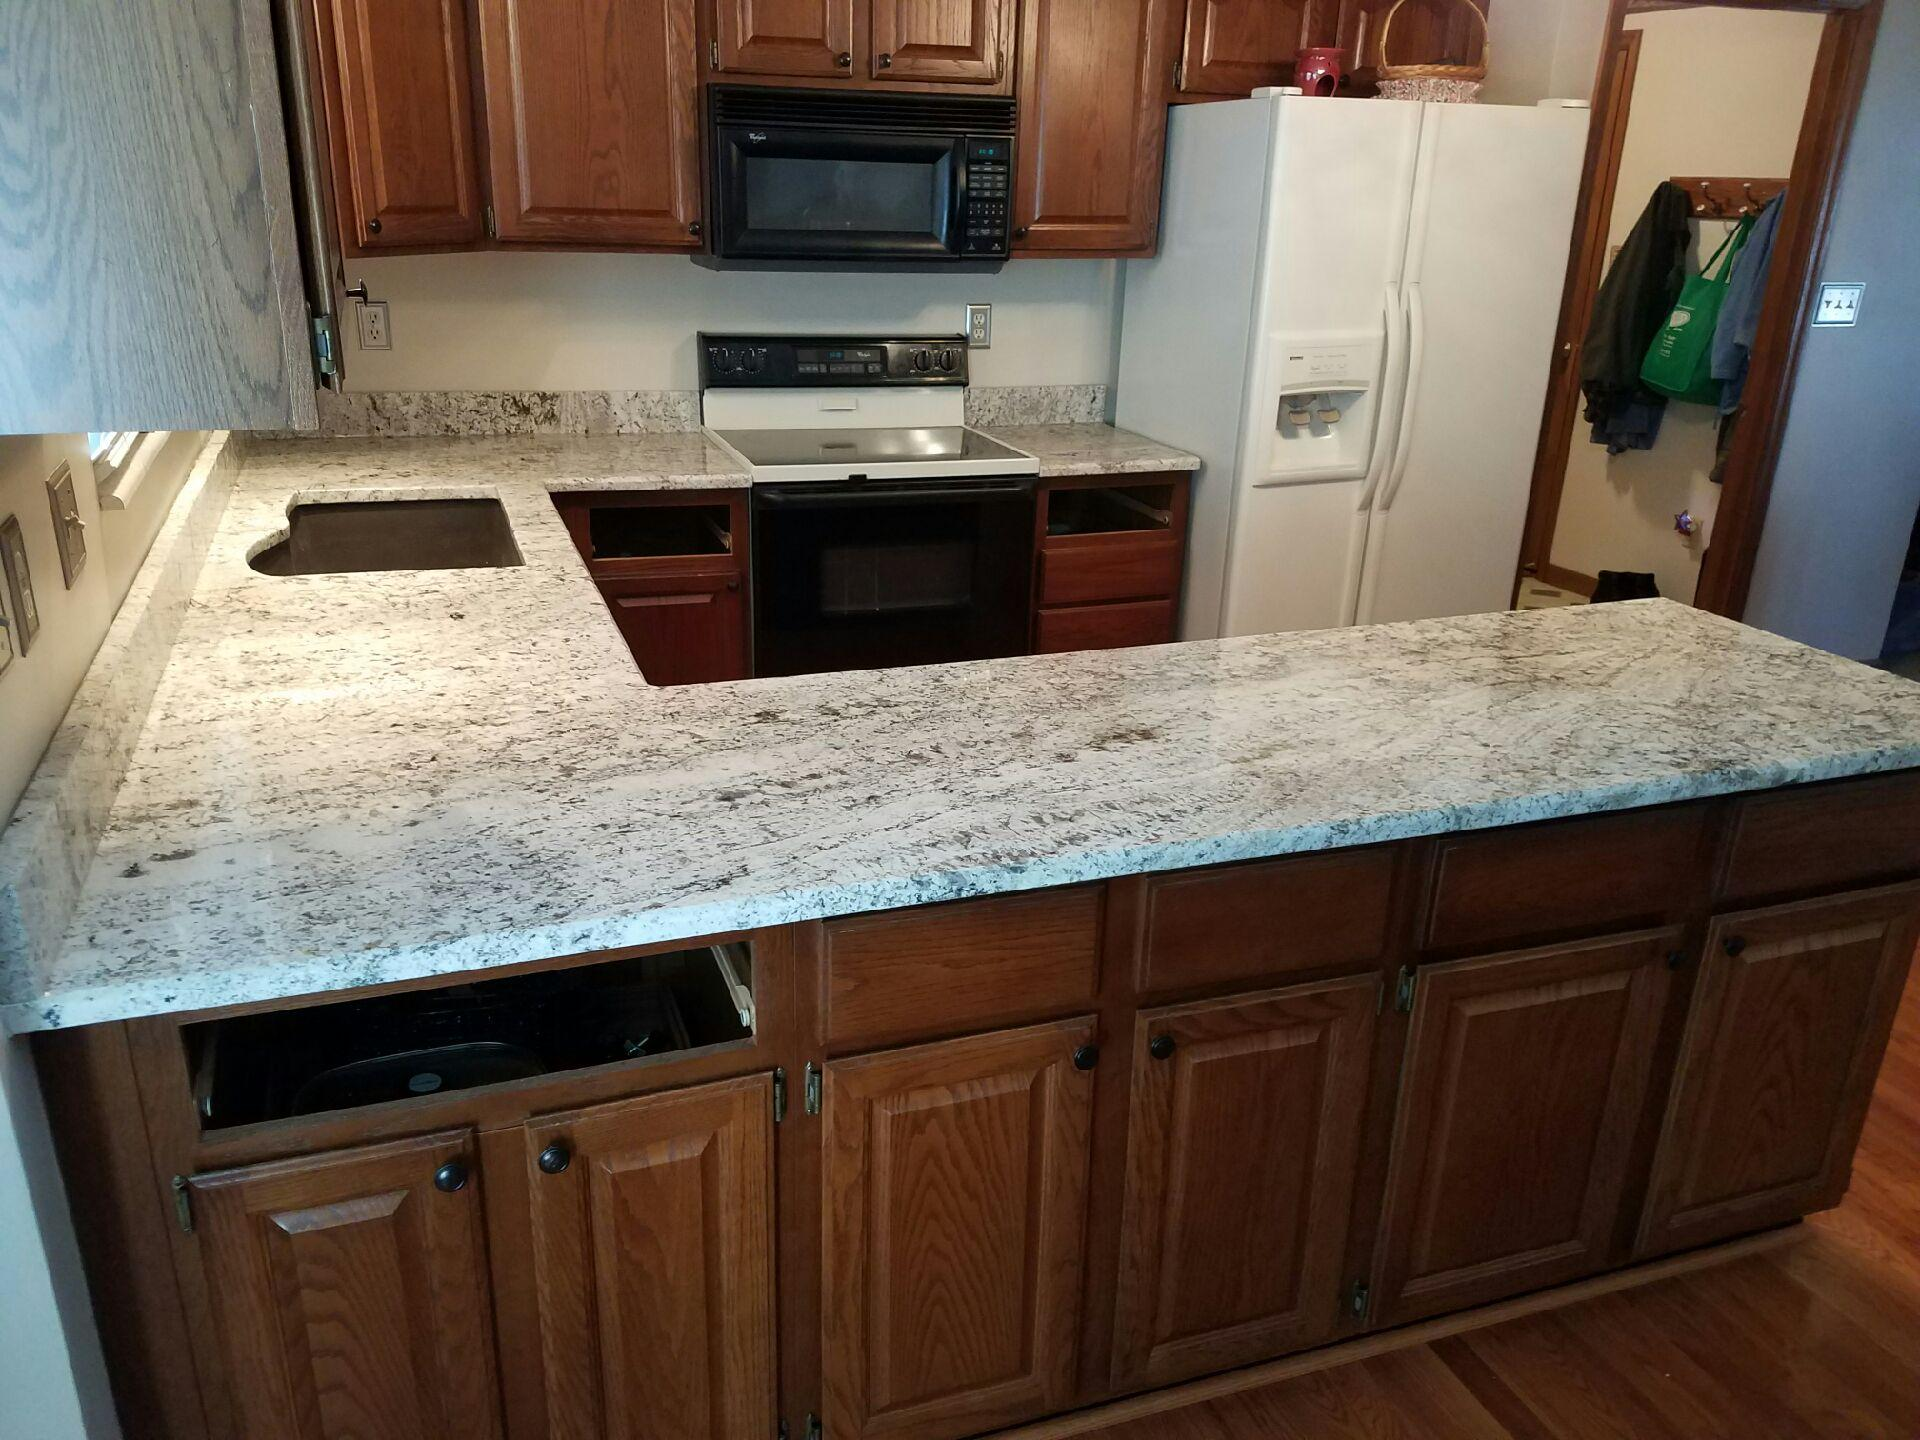 wilsonart kitchen cabinets triple sink granite countertop | gallery slabs o ...